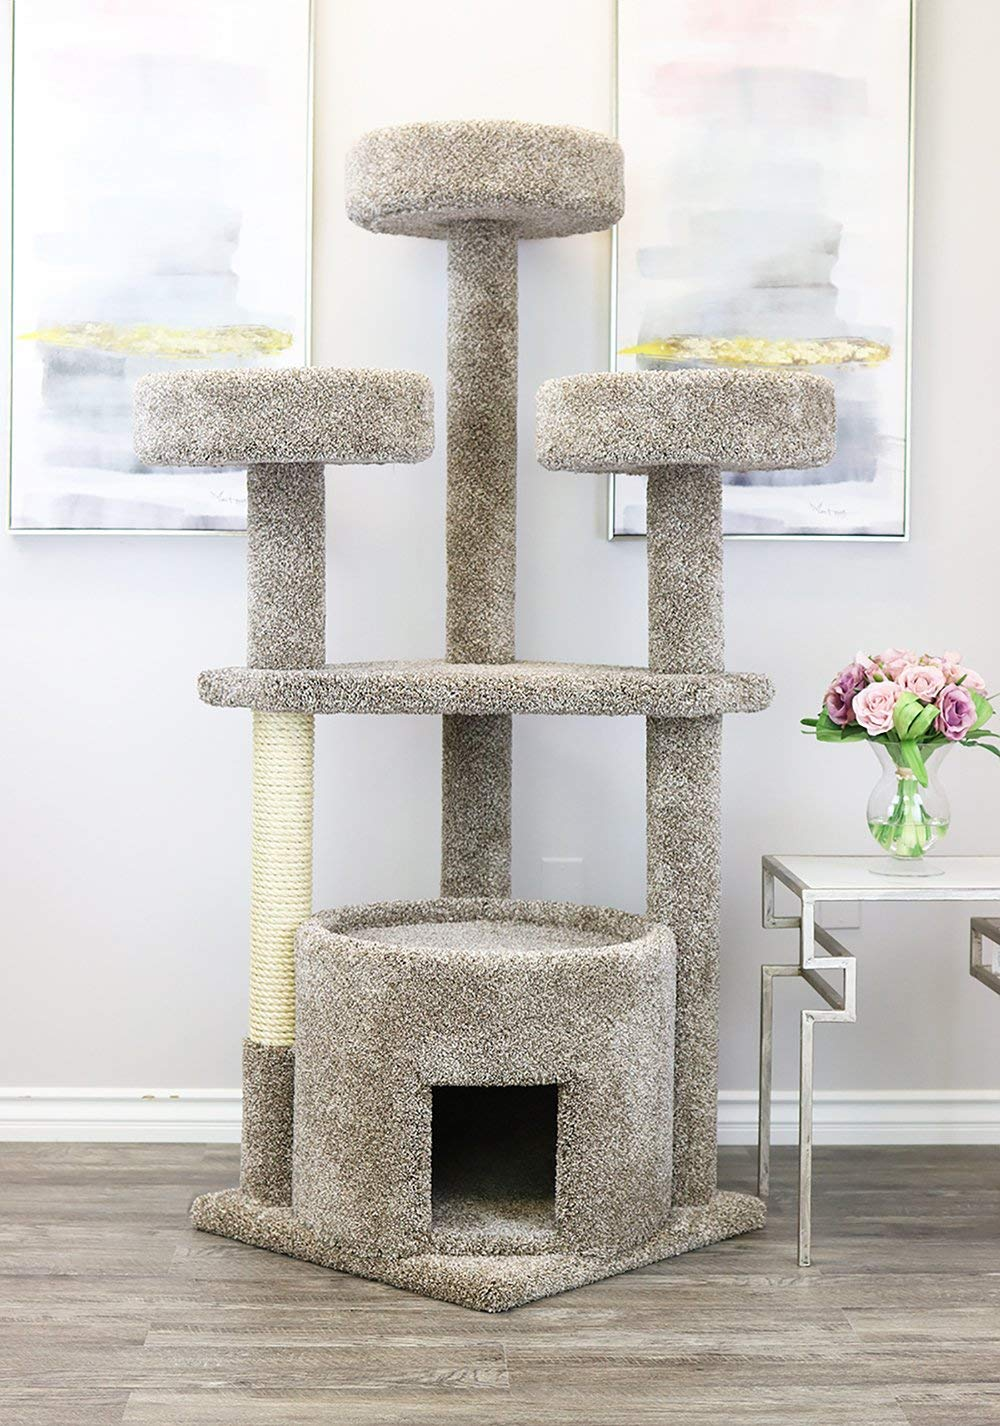 Neutral Main Coon Cat Tree for Large Cats www.puppyurl.com